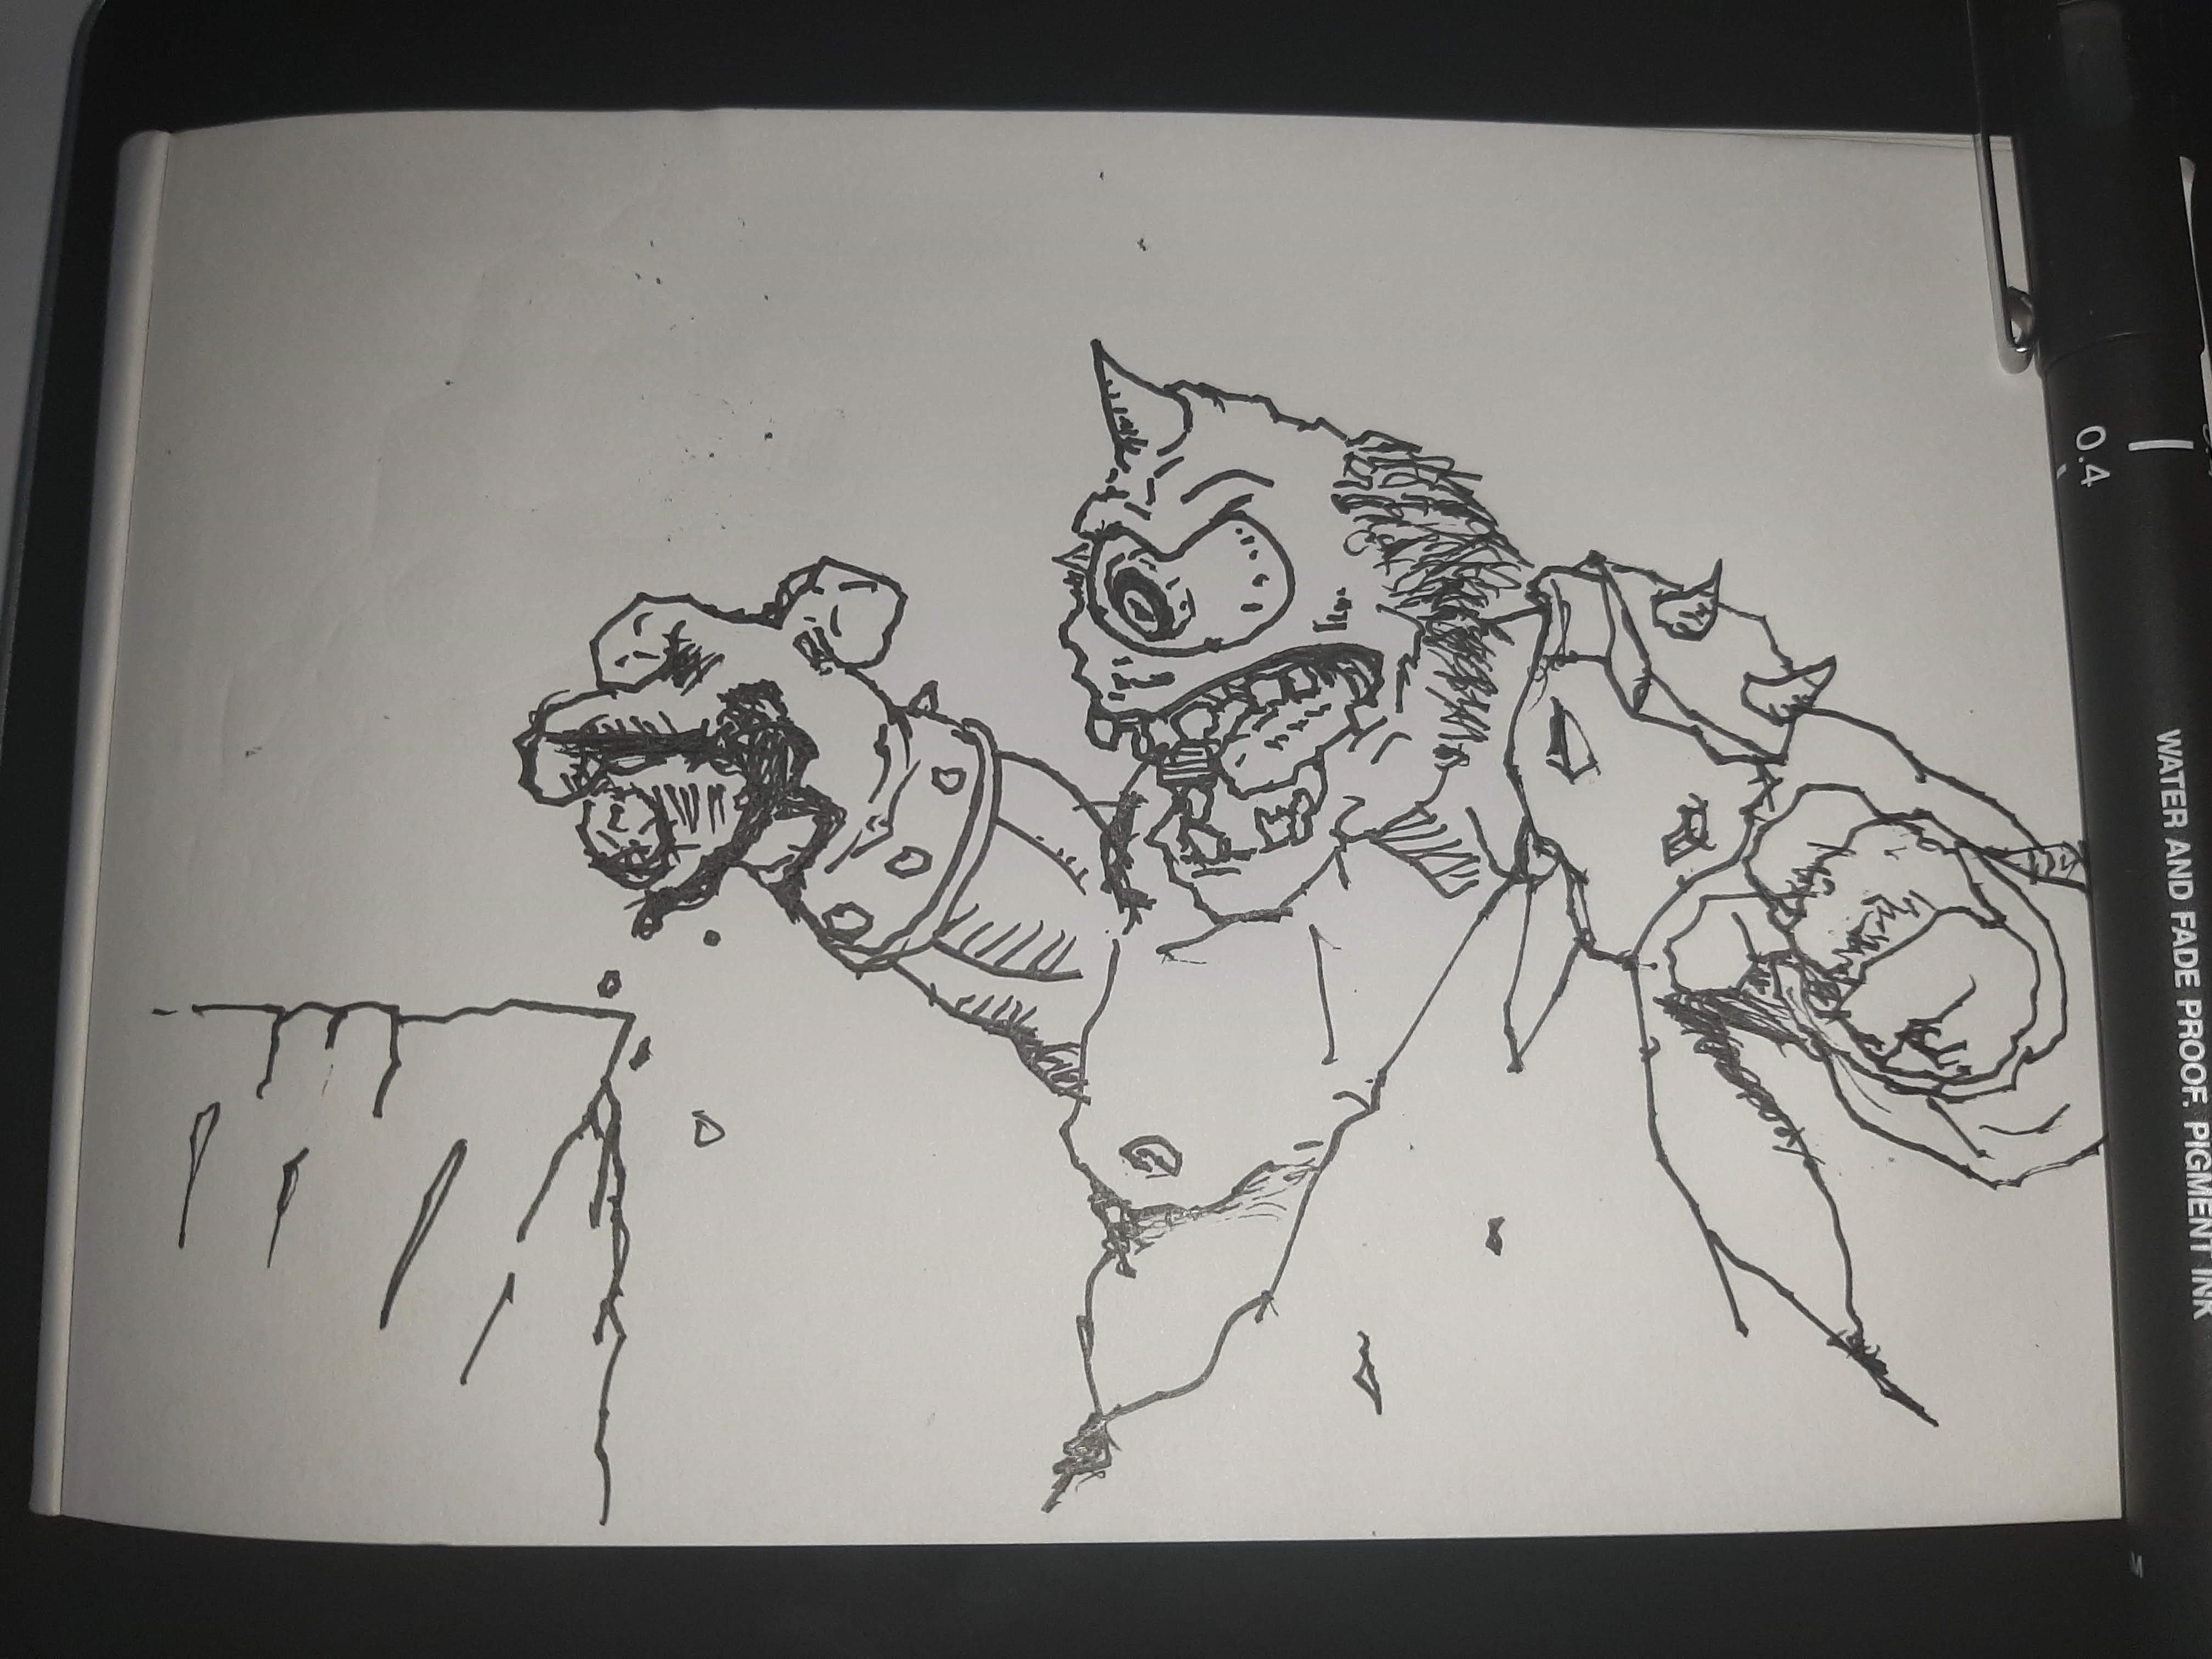 Inktober 2020 day 10: HOPE This... wasn't great. Official prompt list: https://inktober.com/rules